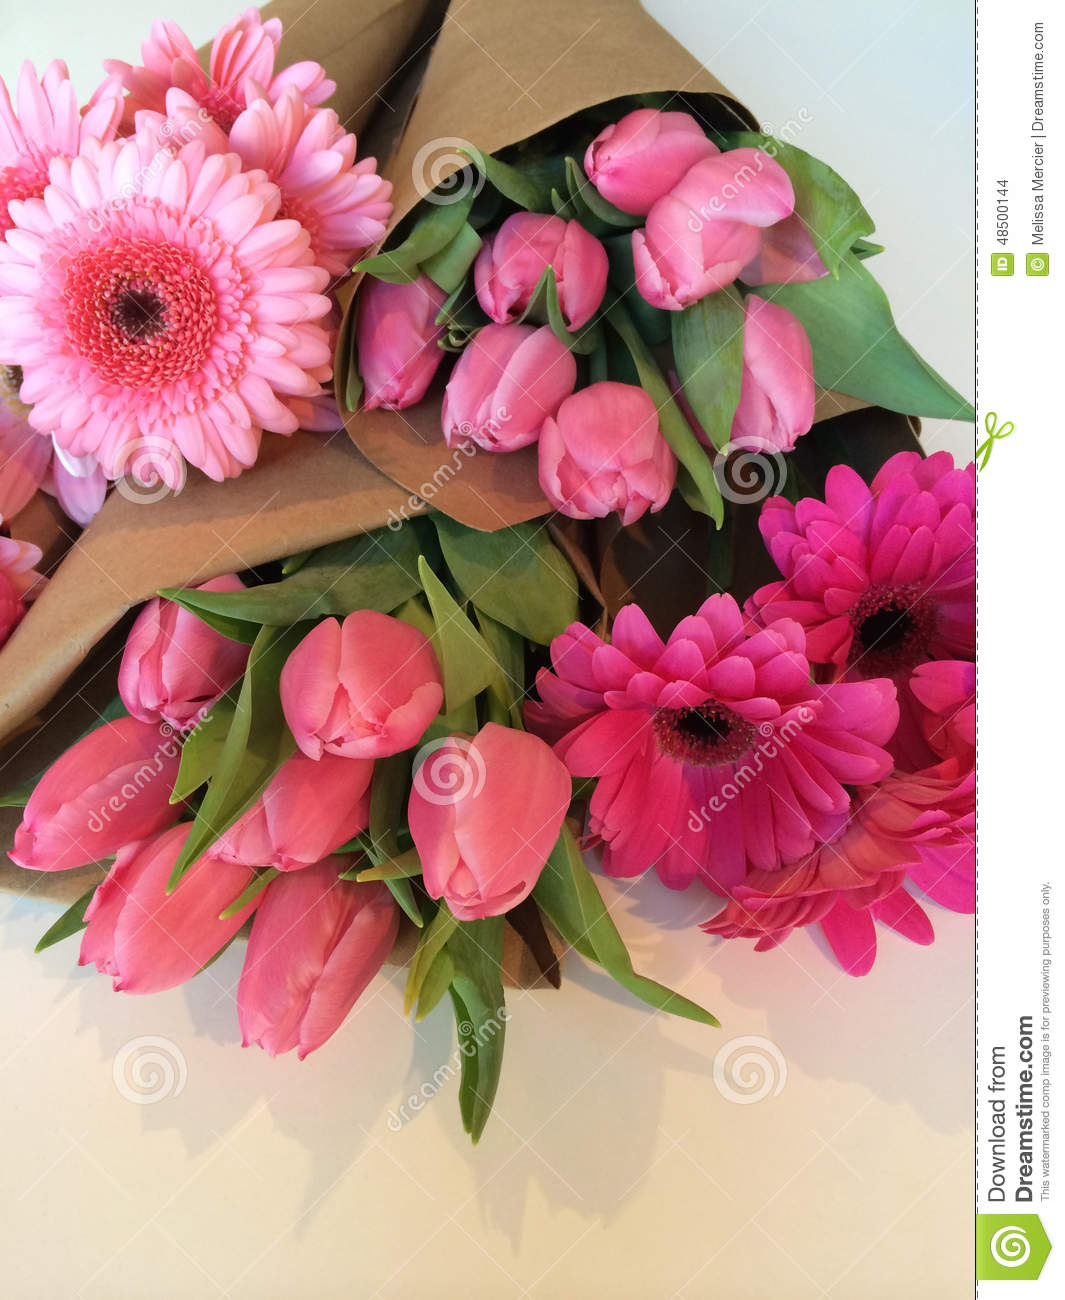 Wrapped Flower Bouquets Stock Photo Image Of Bunch Bloom 48500144